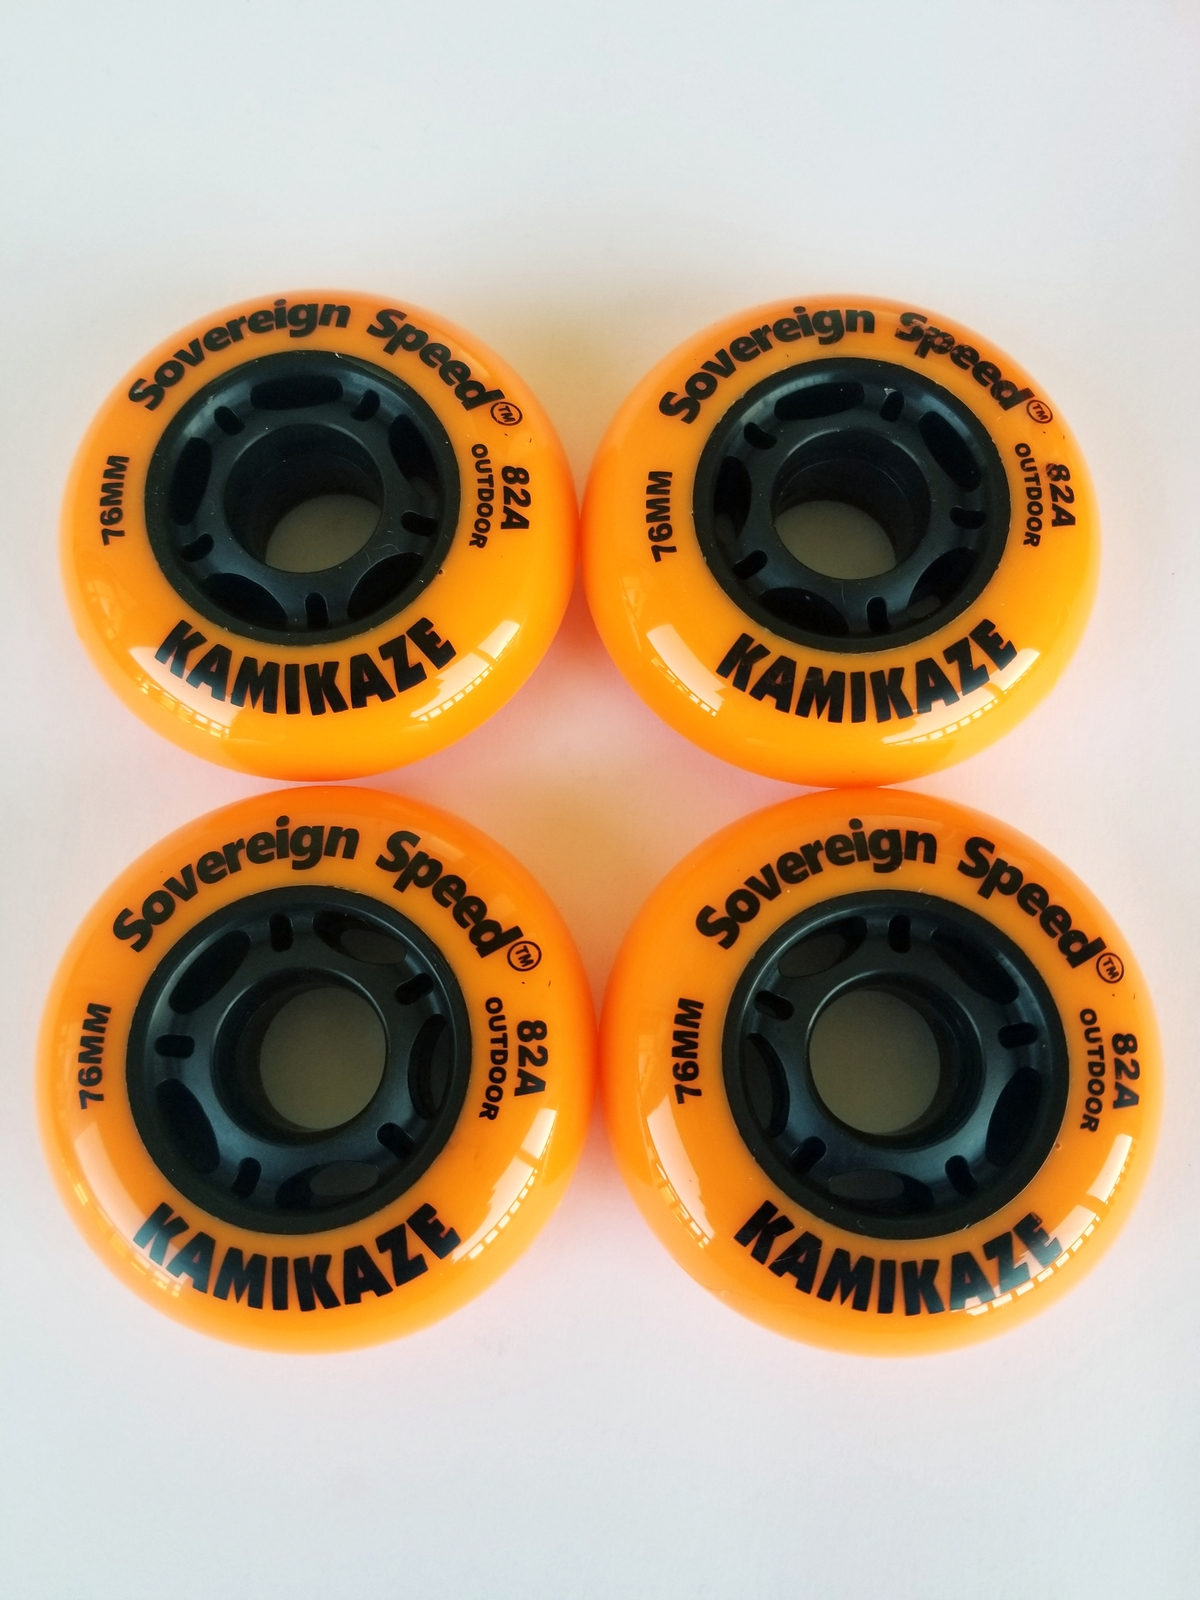 OUT 4x 76mm oft Outdoor Inline Skate Wheels / rollerblade roller hockey fitness - $30.00